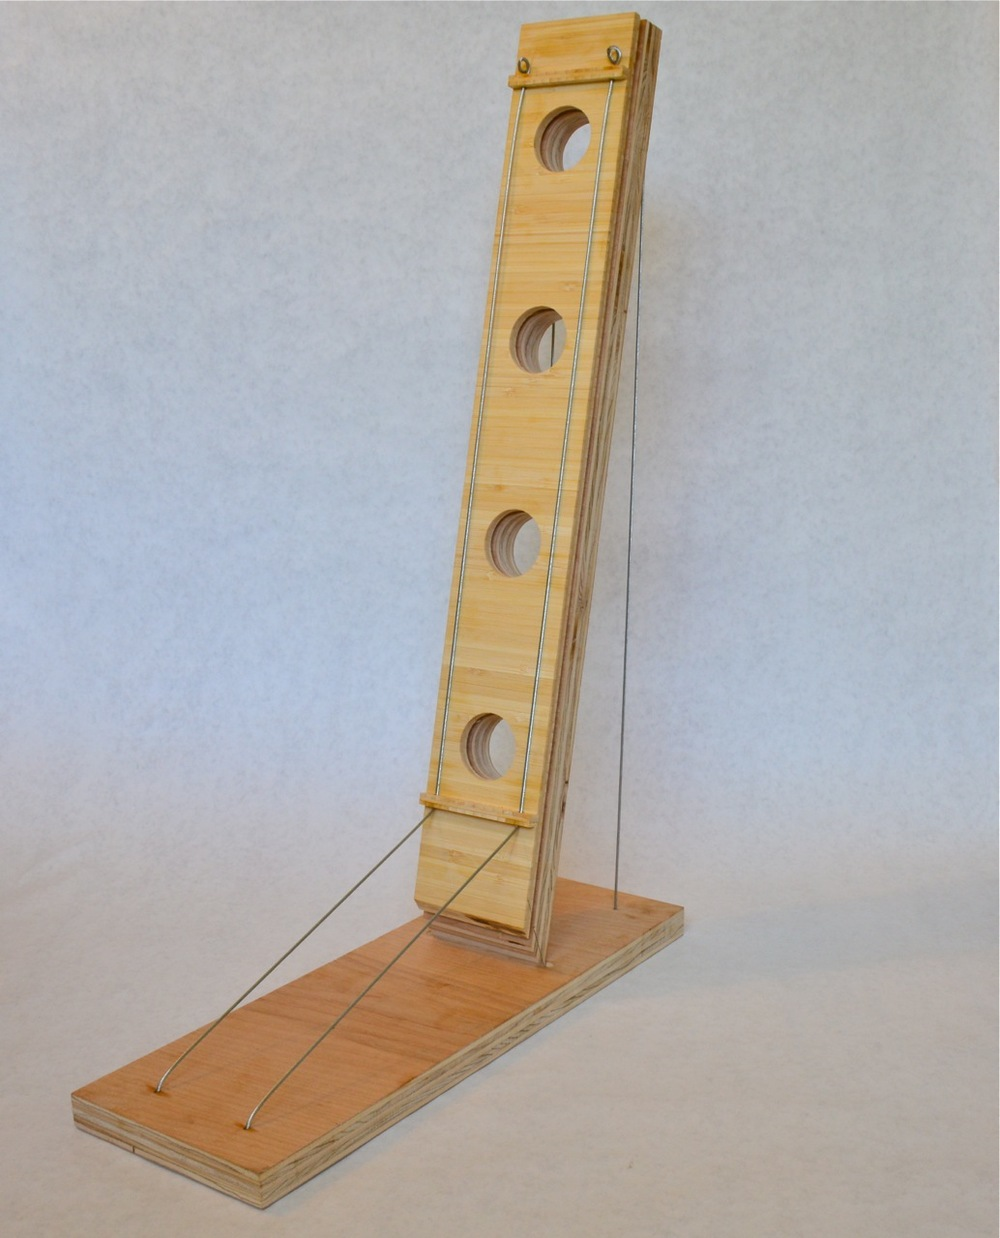 The initial plywood prototype had a wider base than the final version.